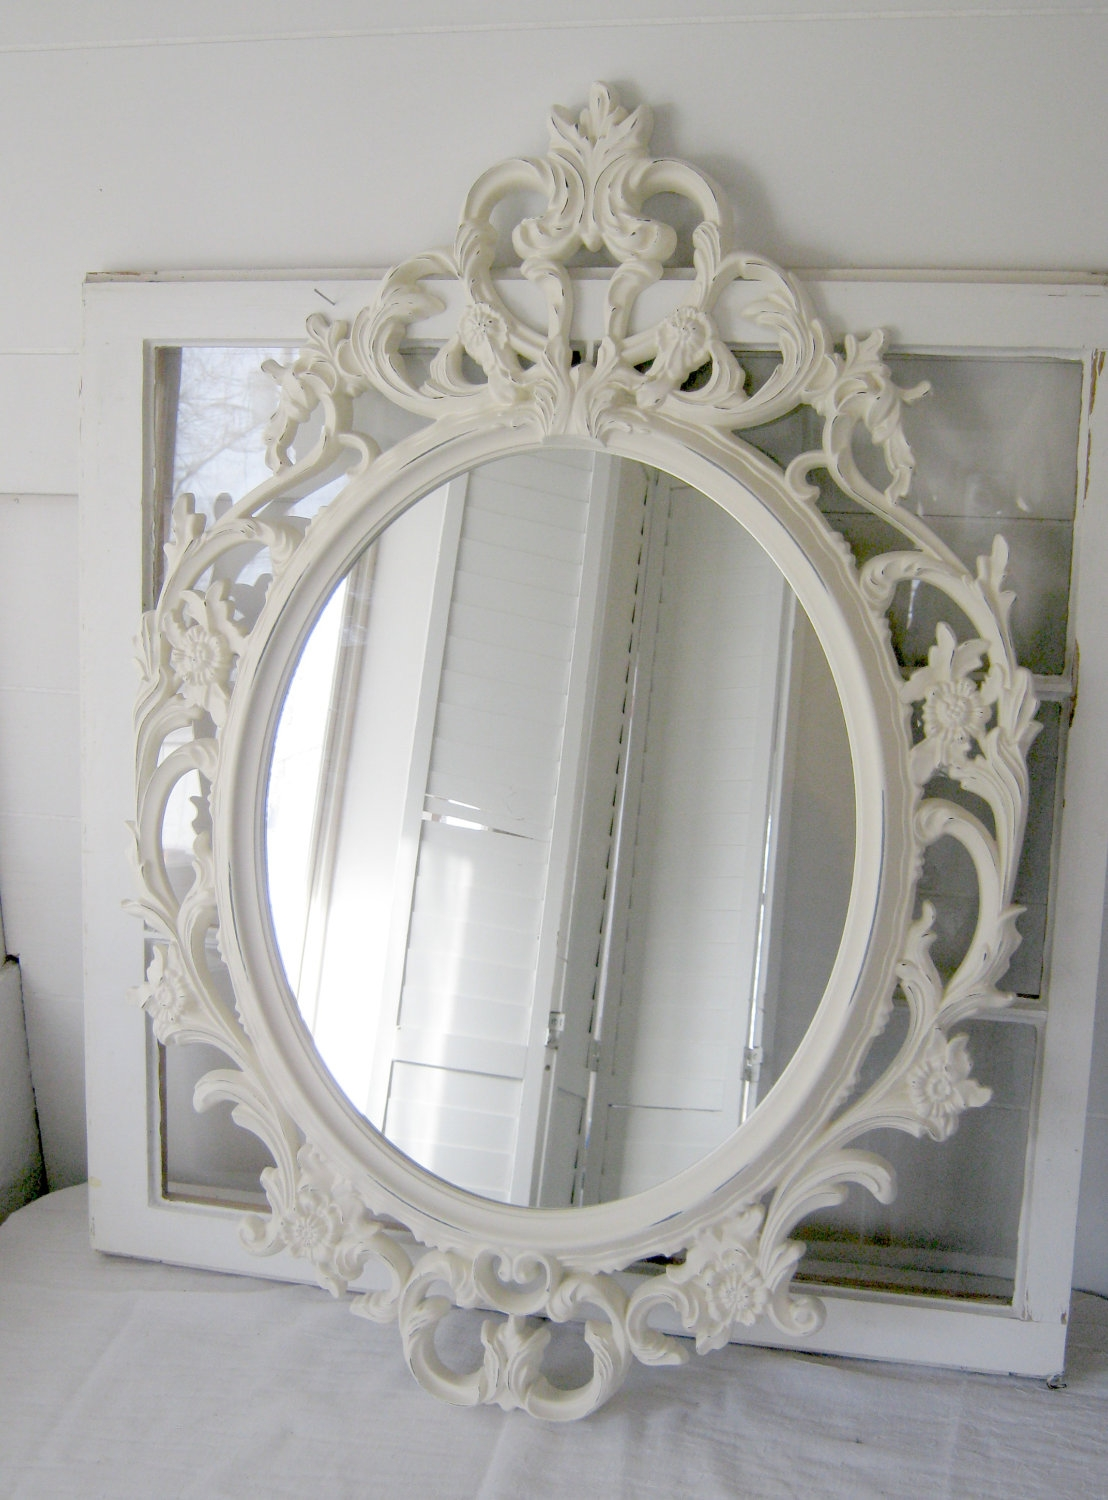 Shab Chic Baroque Oval Mirror Antique White Ornate Mirror With Mirrors Shabby Chic (Image 11 of 15)